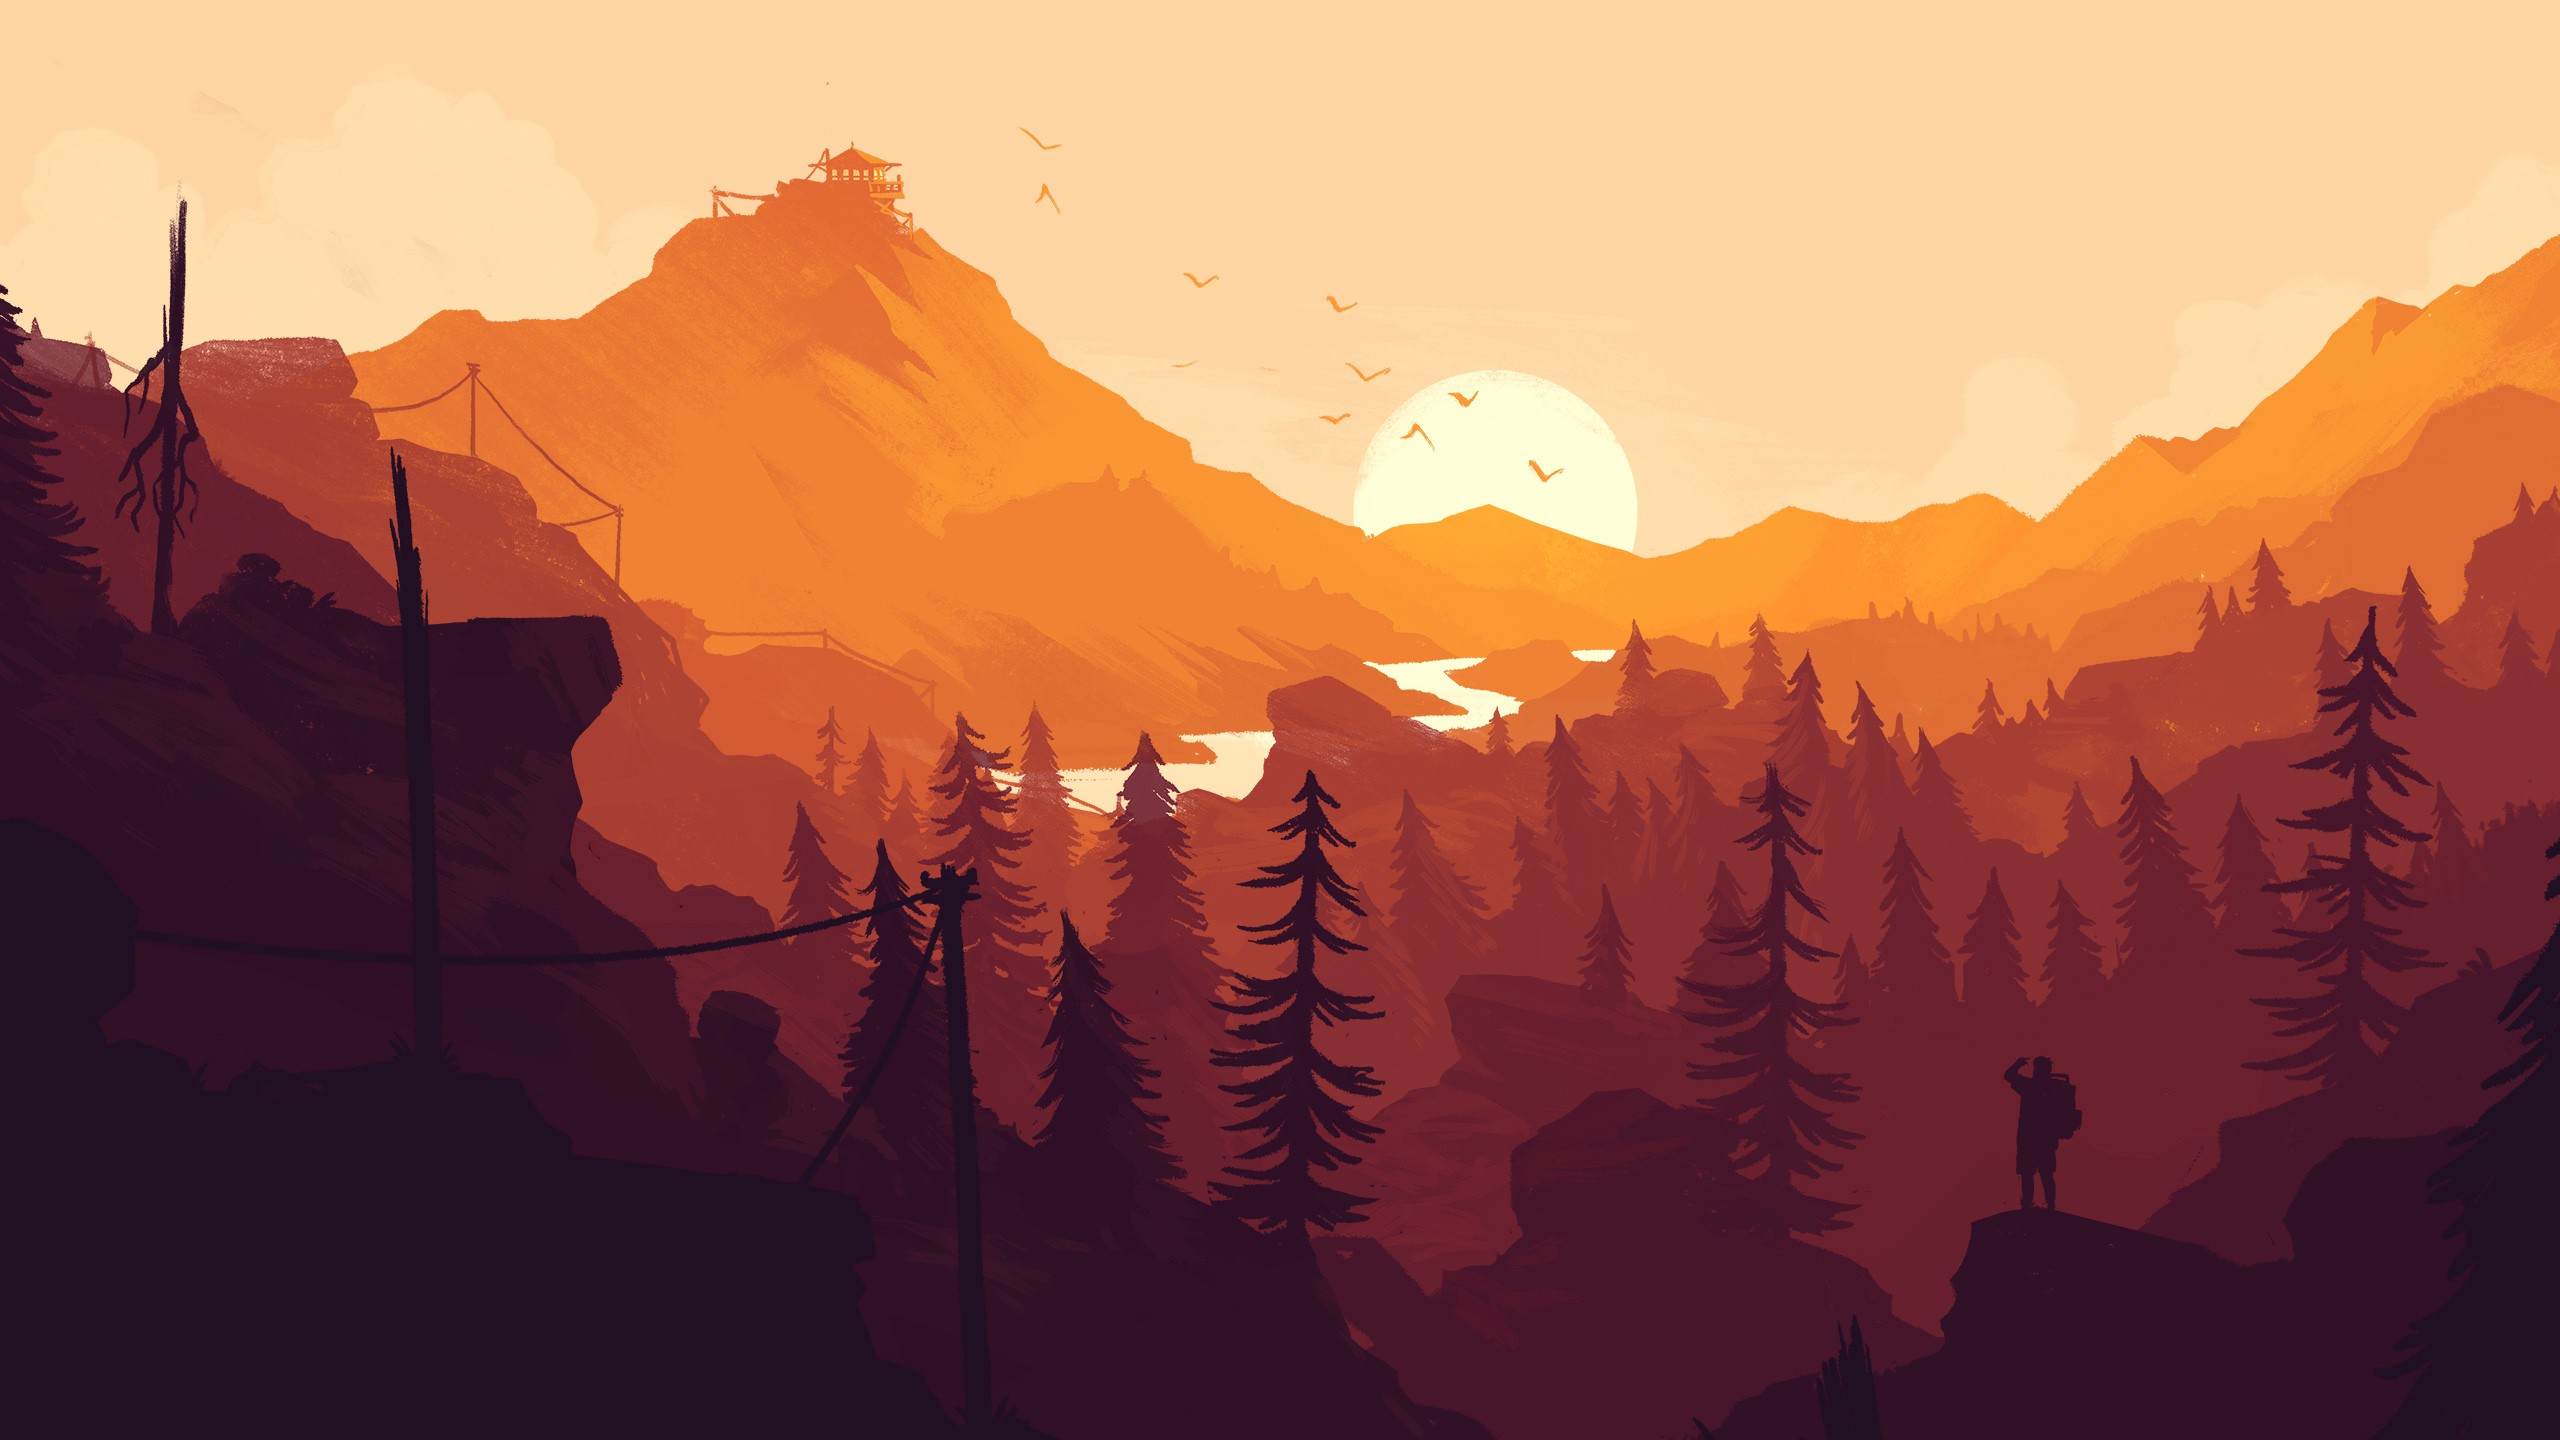 1280x720 firewatch game 720p hd 4k wallpapers images backgrounds photos and pictures - 1366x768 is 720p or 1080p ...